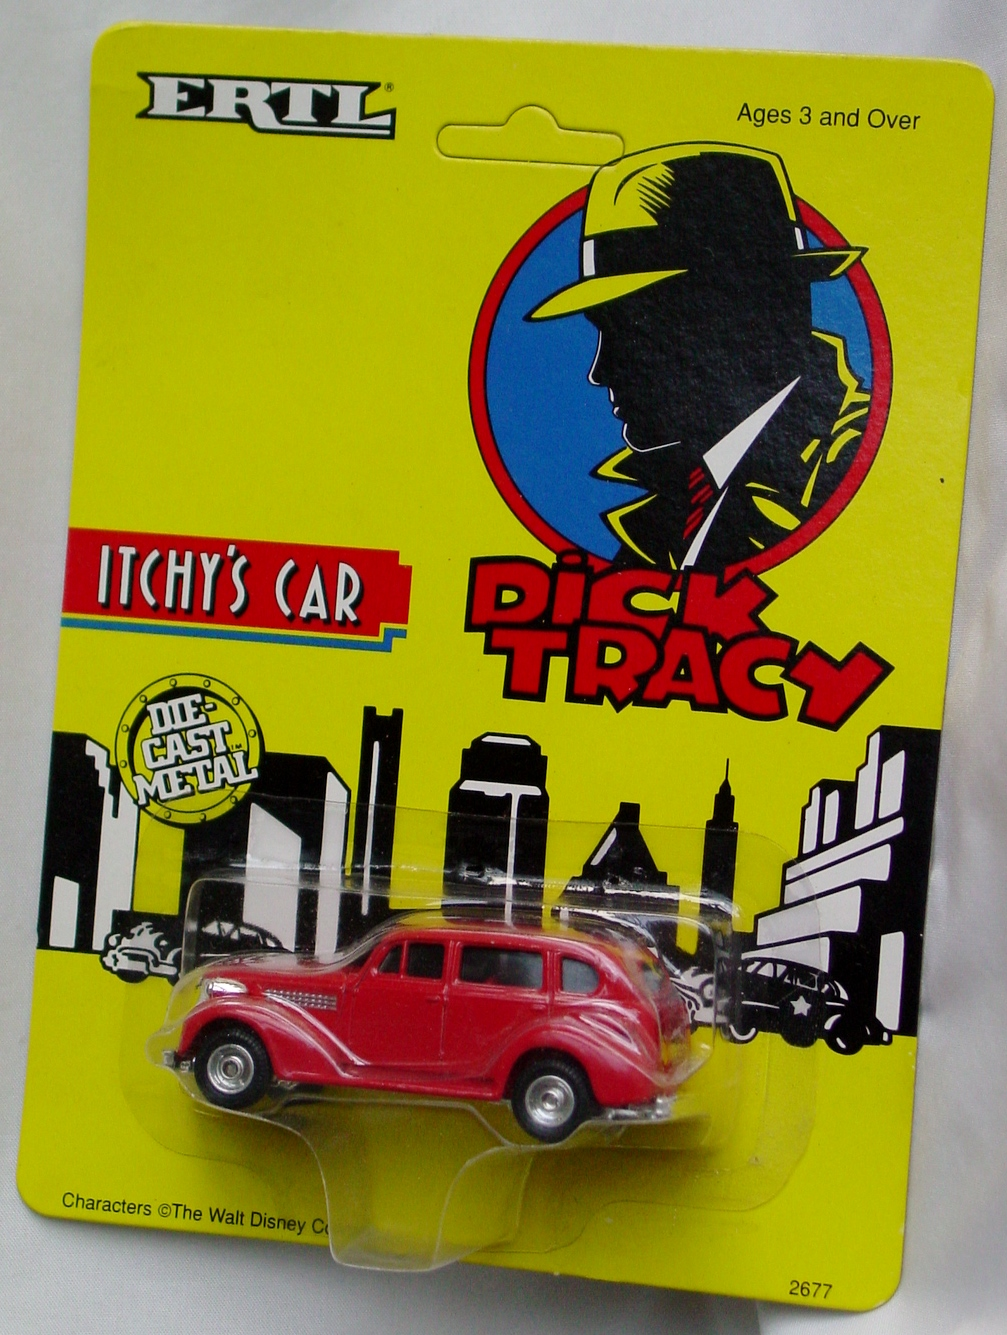 64 - ERTL DICK TRACY Itchys Car